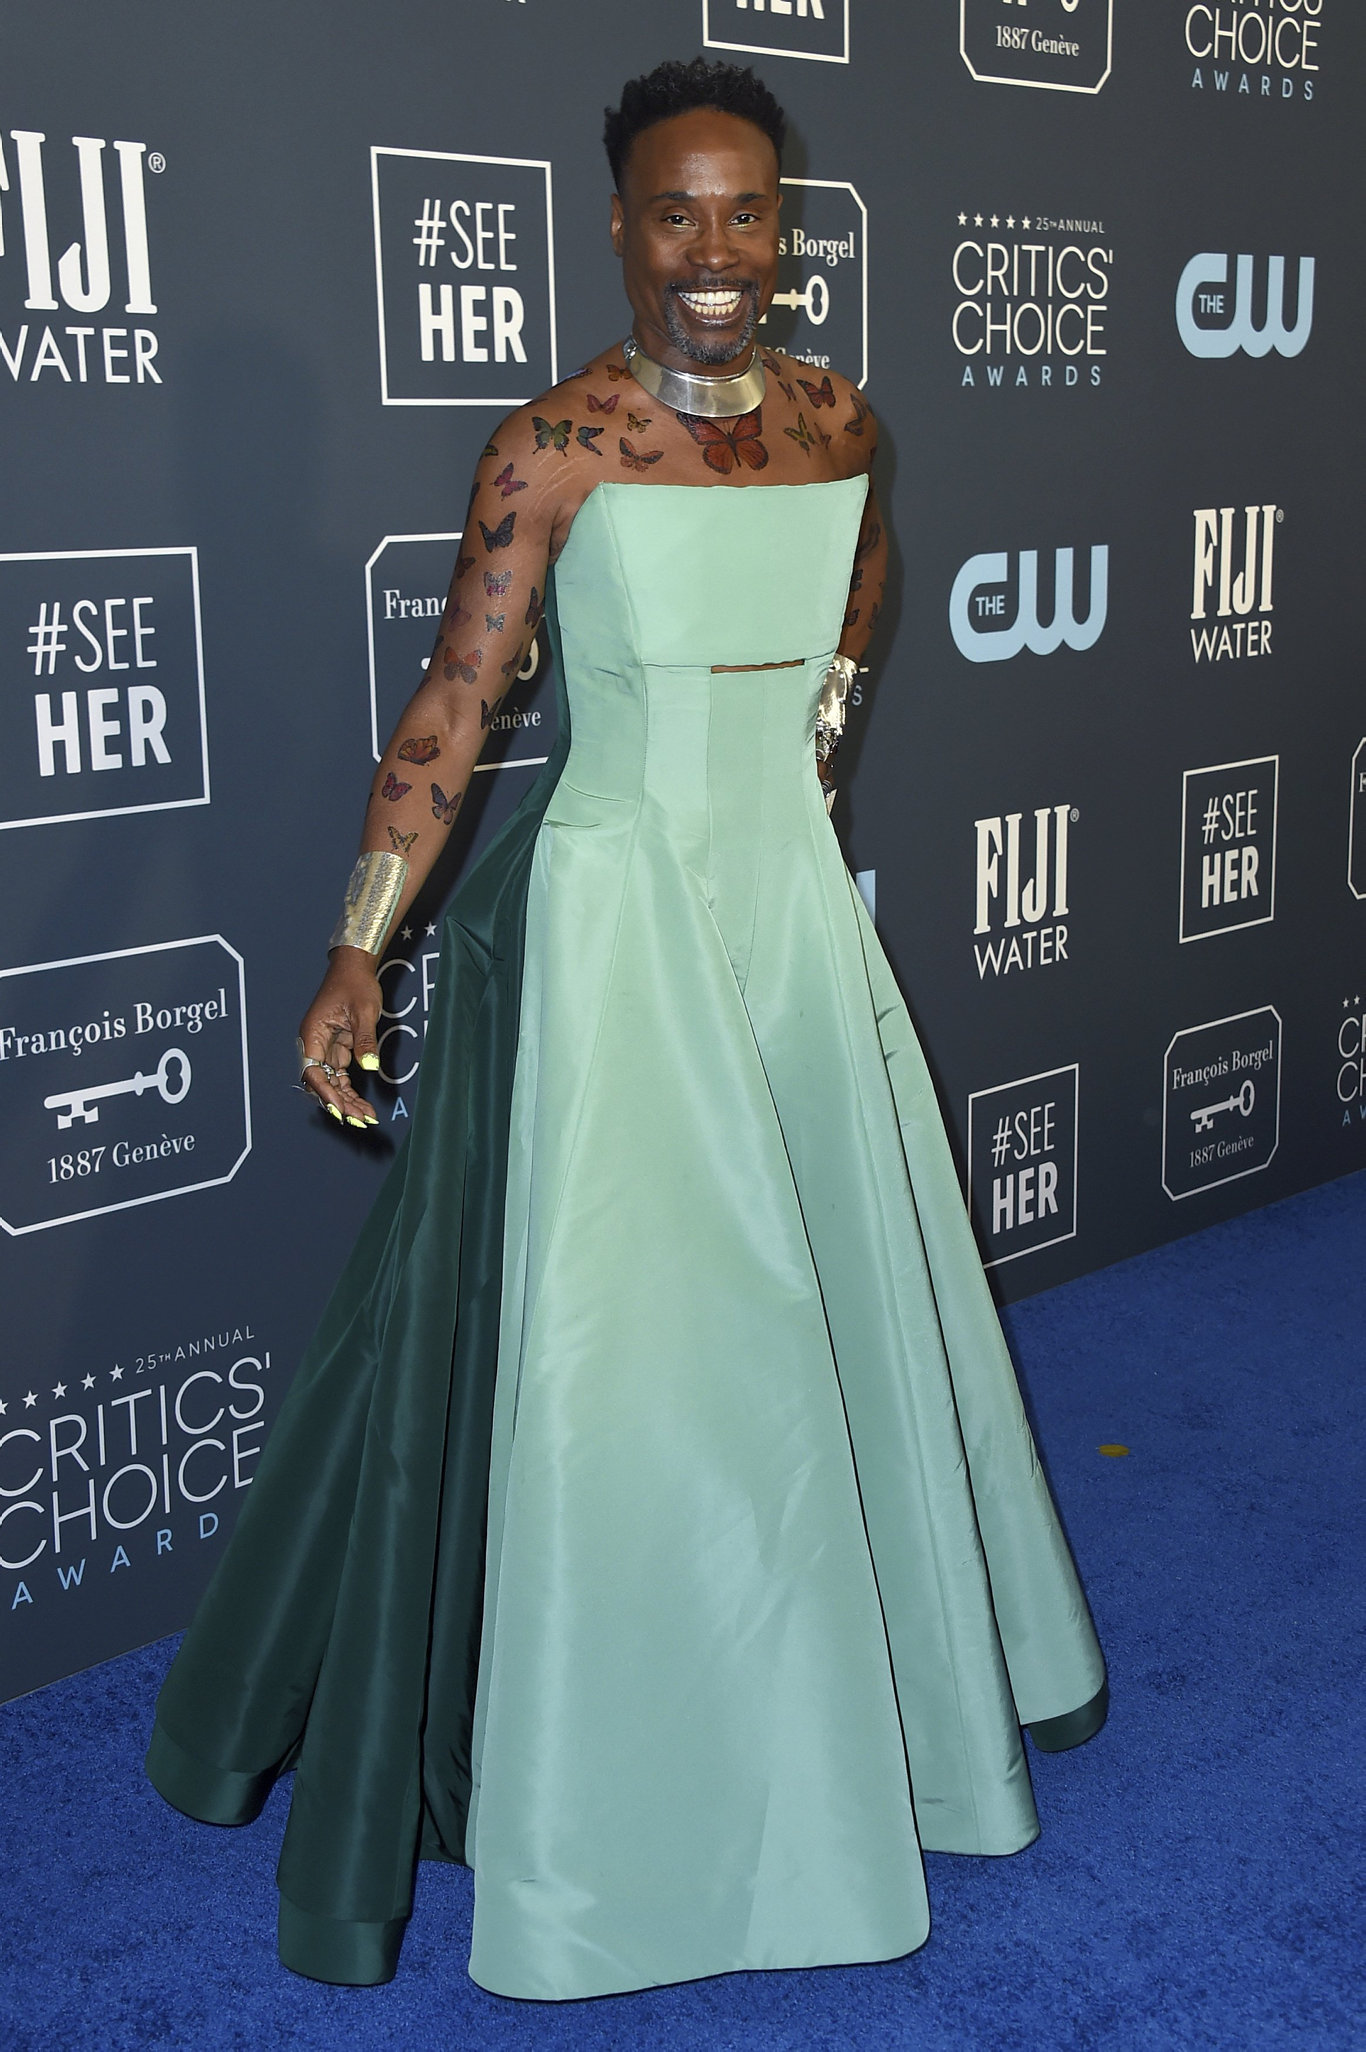 Billy Porter arrives at the 25th annual Critics' Choice Awards at the Barker Hangar in Santa Monica, Calif.